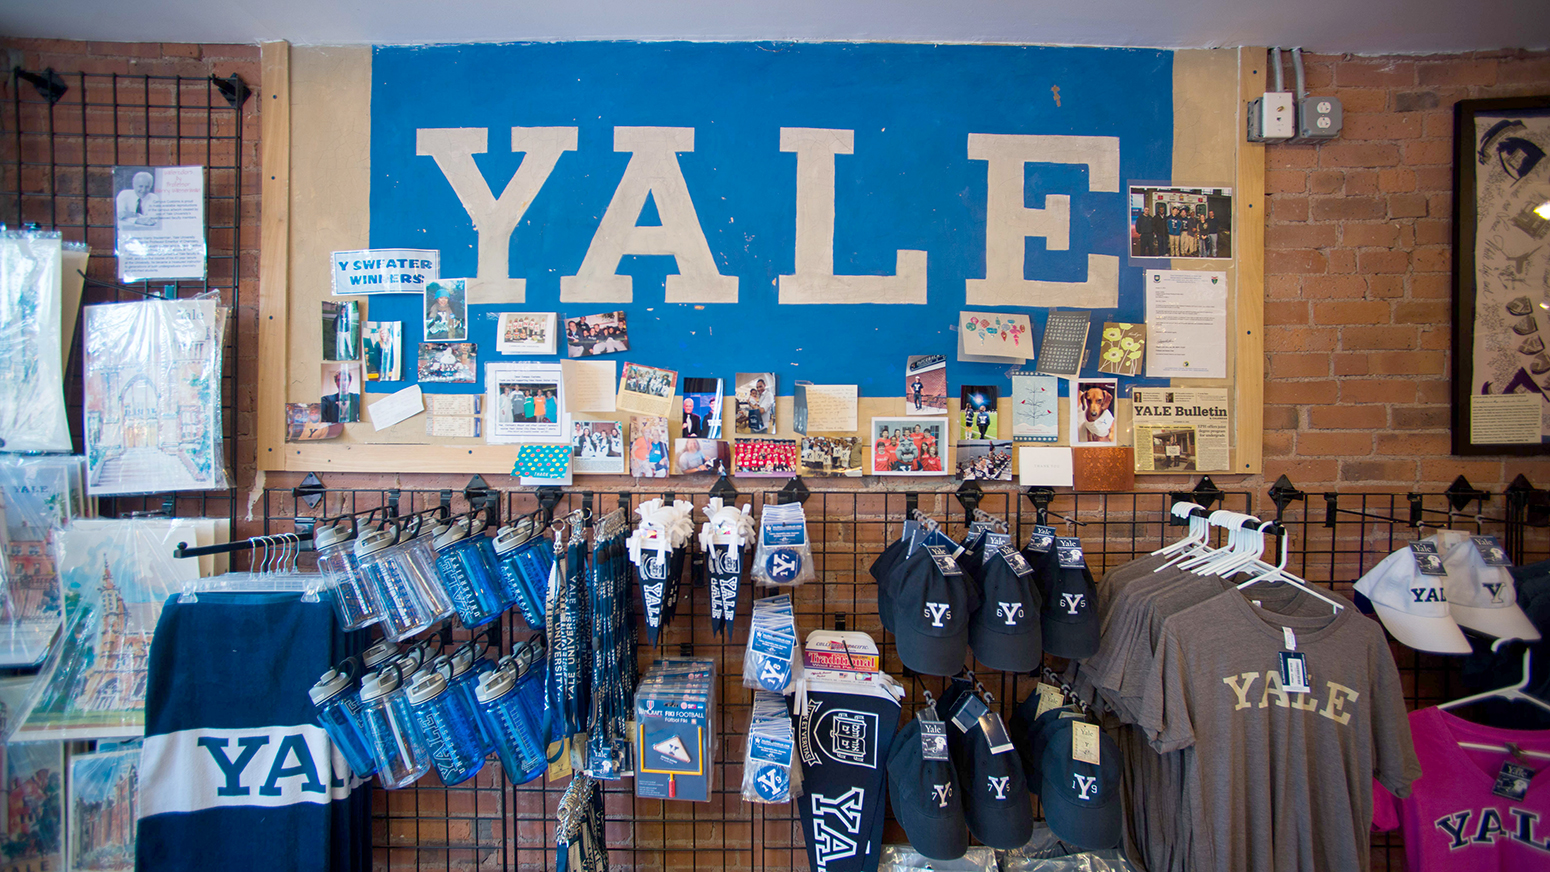 Yale online dating